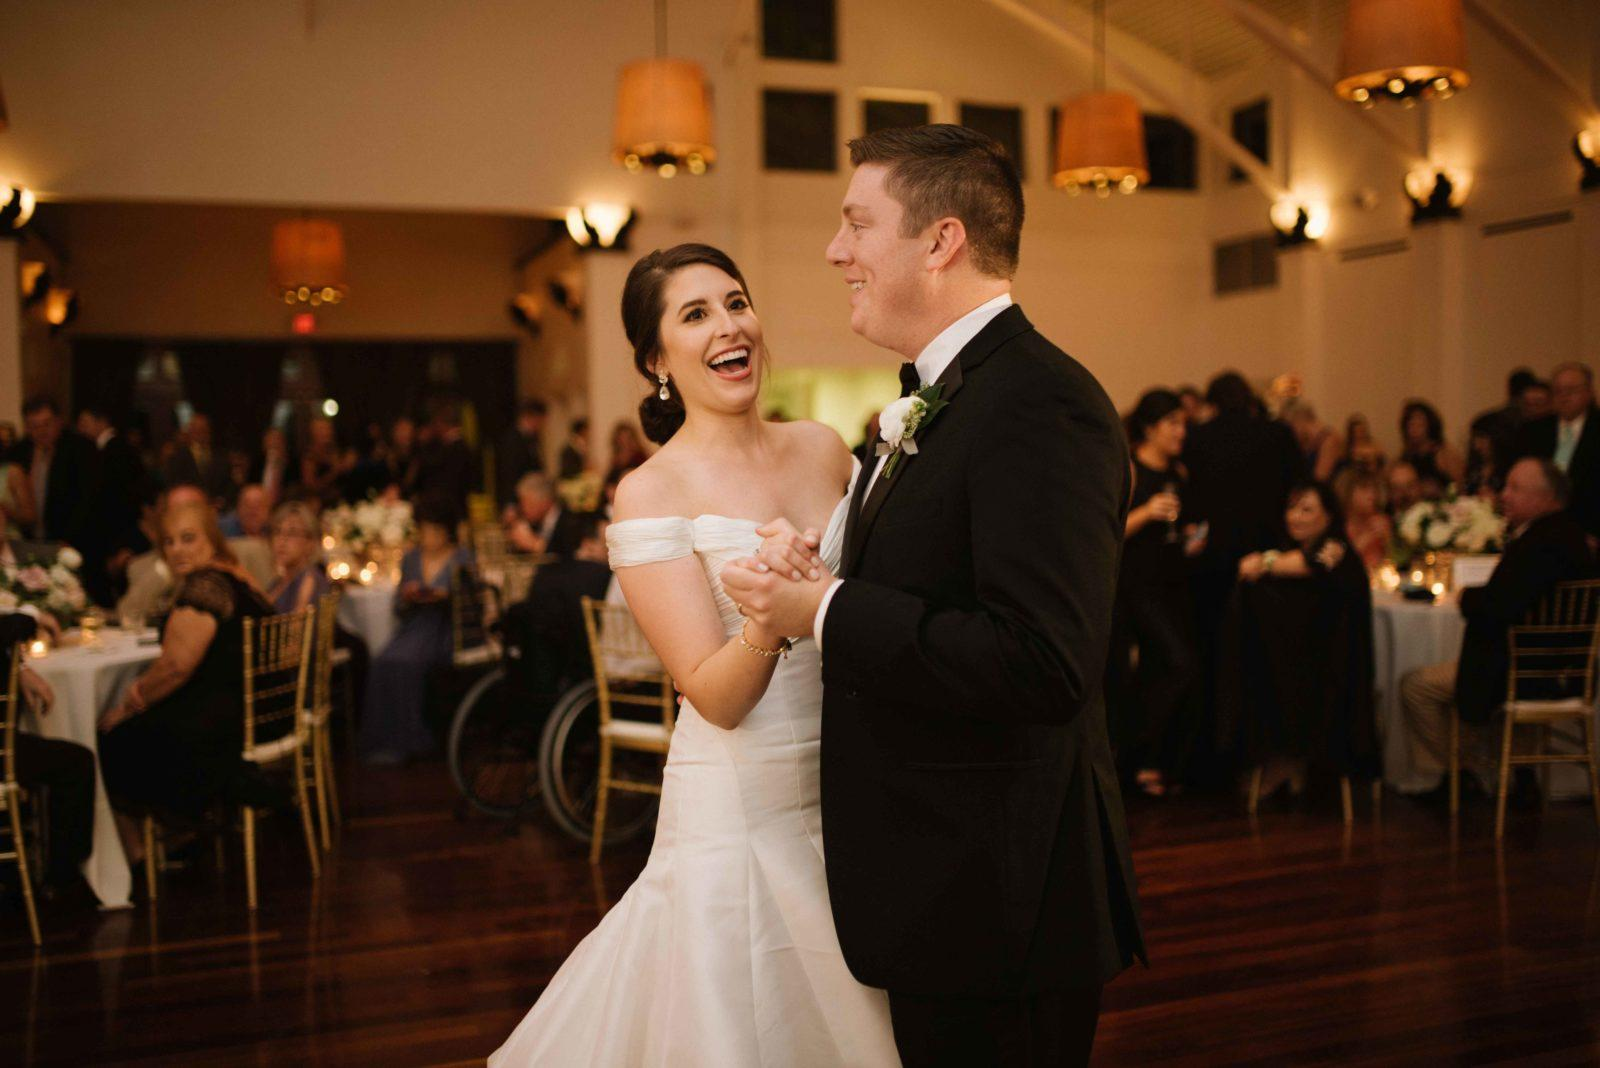 A newlywed couple dances at their wedding reception at the Audubon Tea Room. Photo: Lauren Carroll Photography